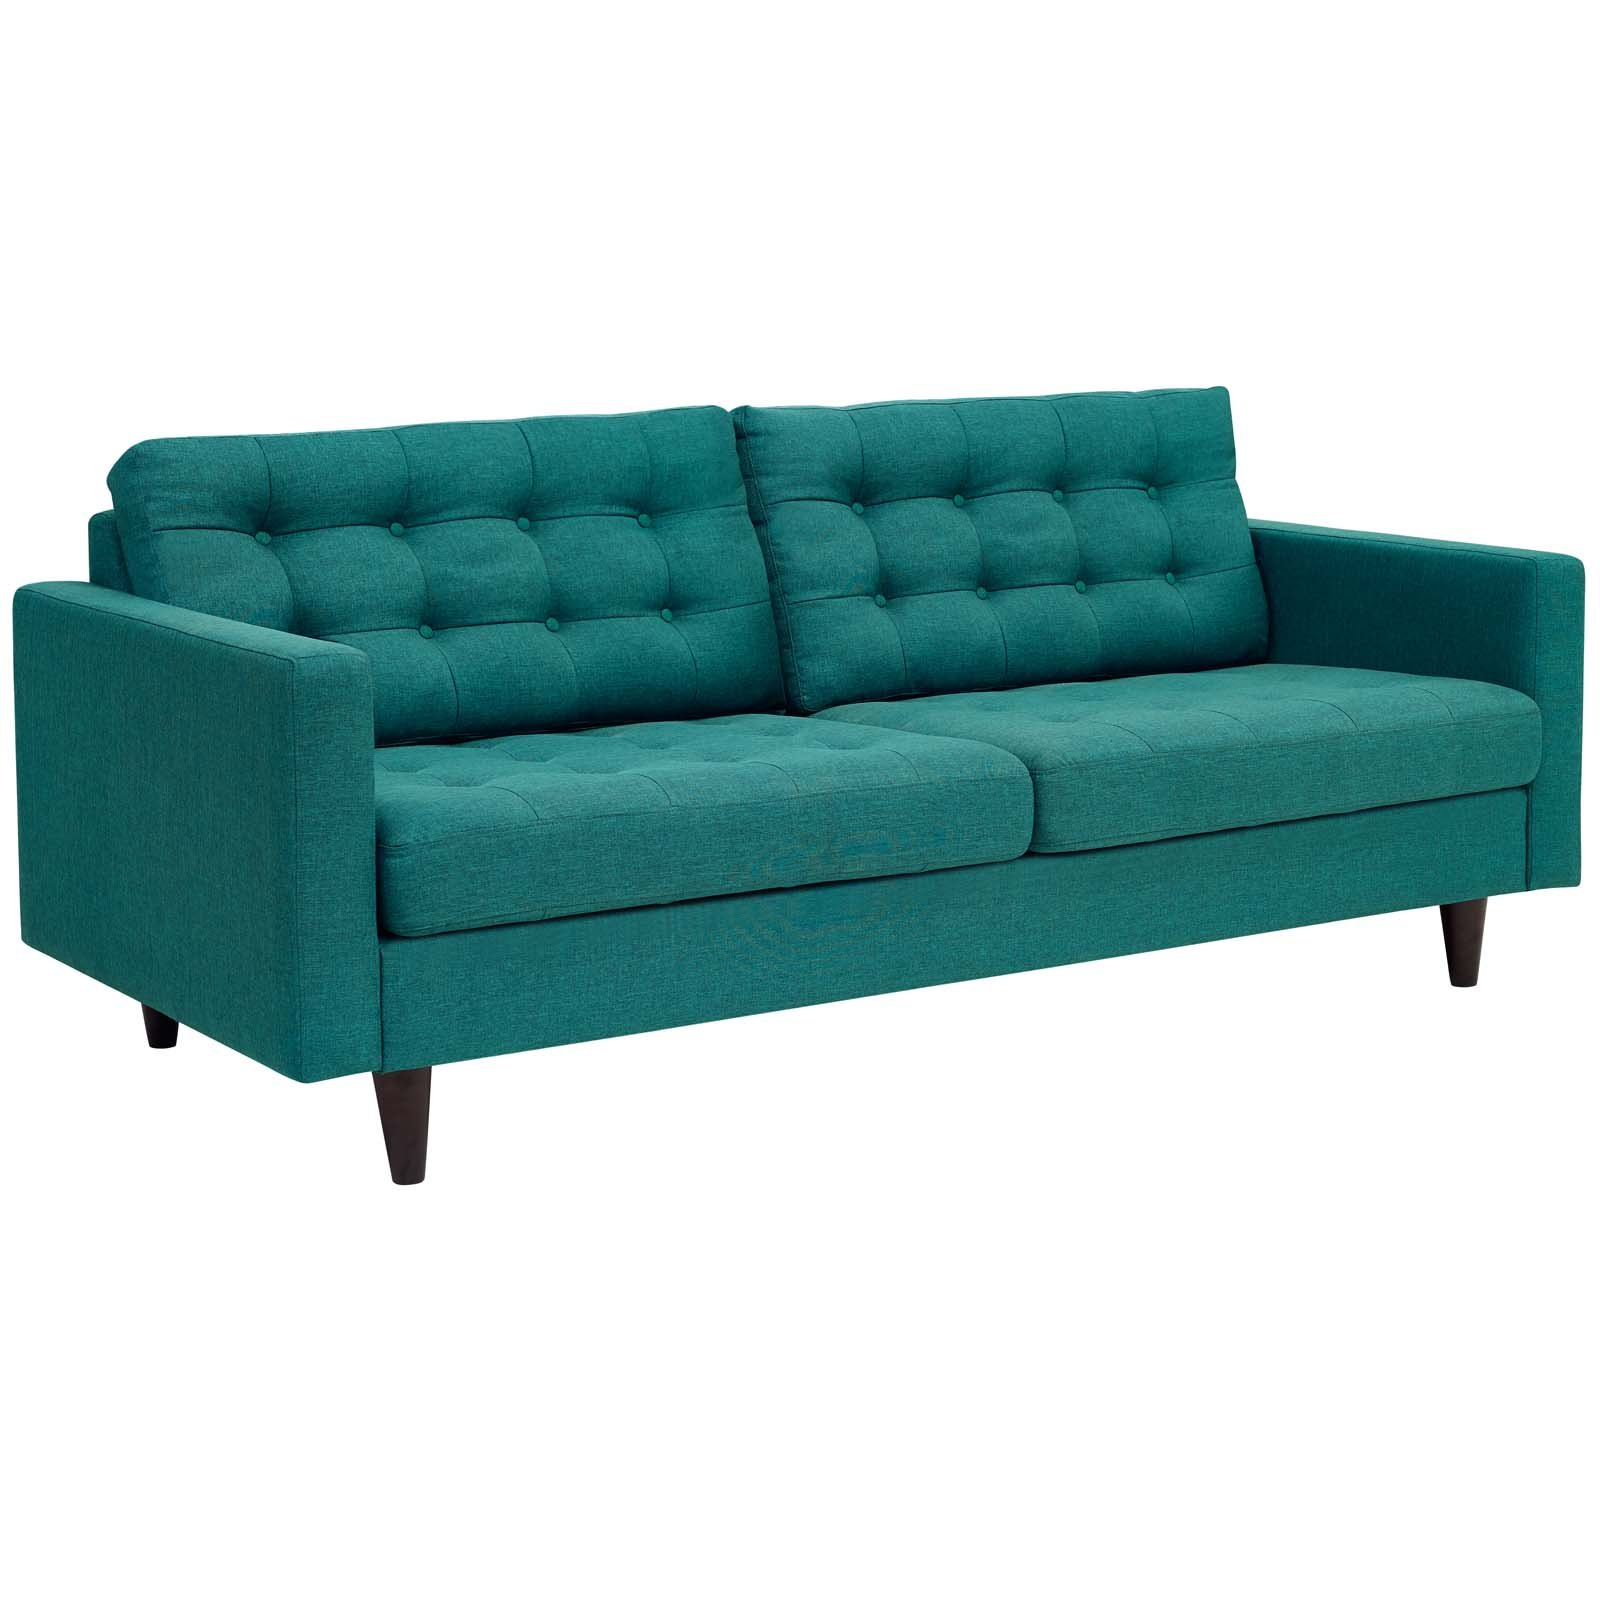 Modway Empress Mid-Century Modern Upholstered Fabric Sofa In Teal by Modway